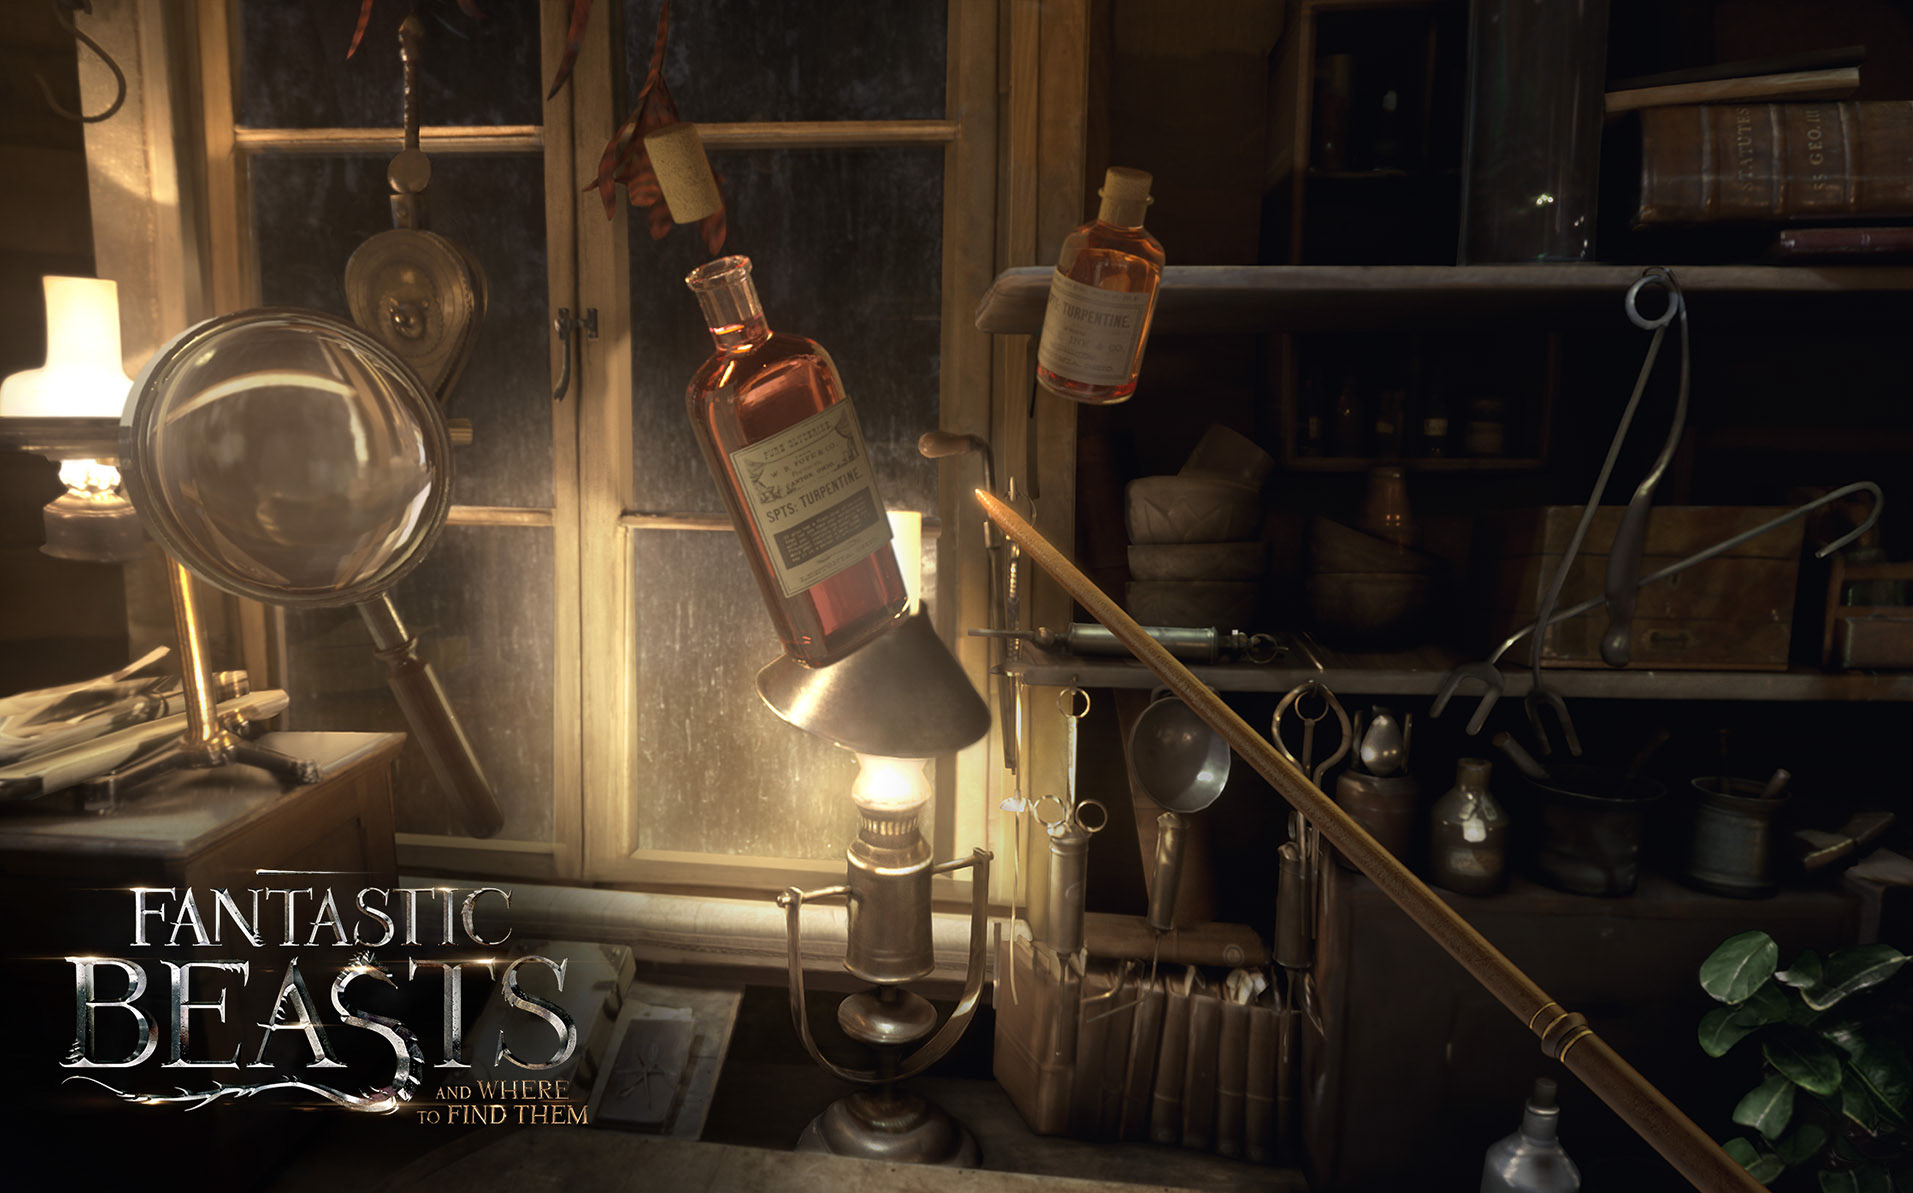 A snapshot of Fantastic Beasts VR experience.